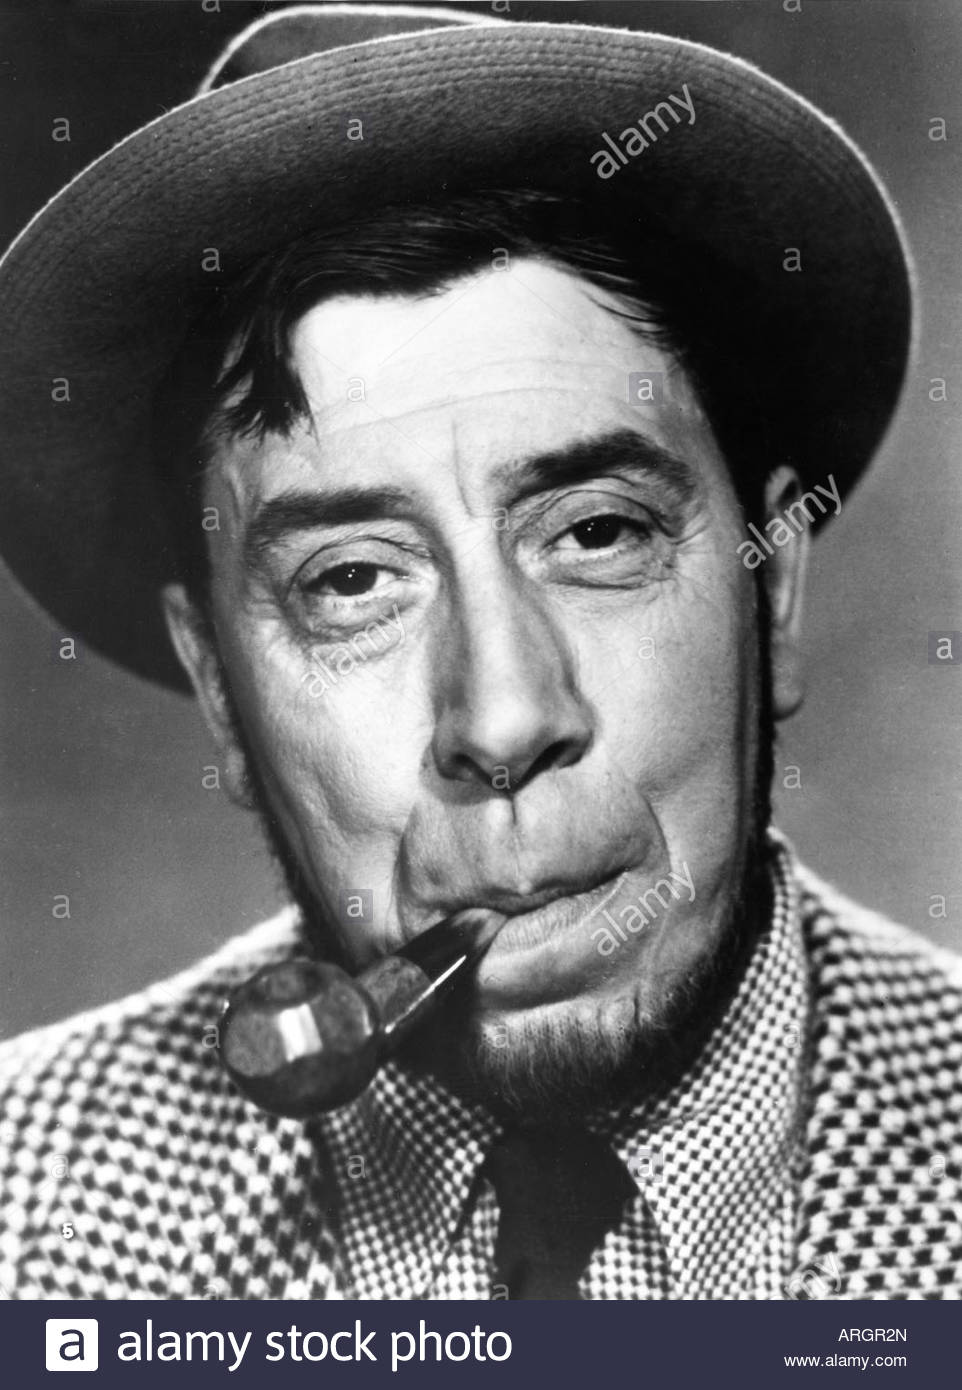 Fernandel, 8.5.1903 - 26.2.1971, French actor and singer, portrait, PR photo for movie, 'The Sheep Has Five - Stock Image